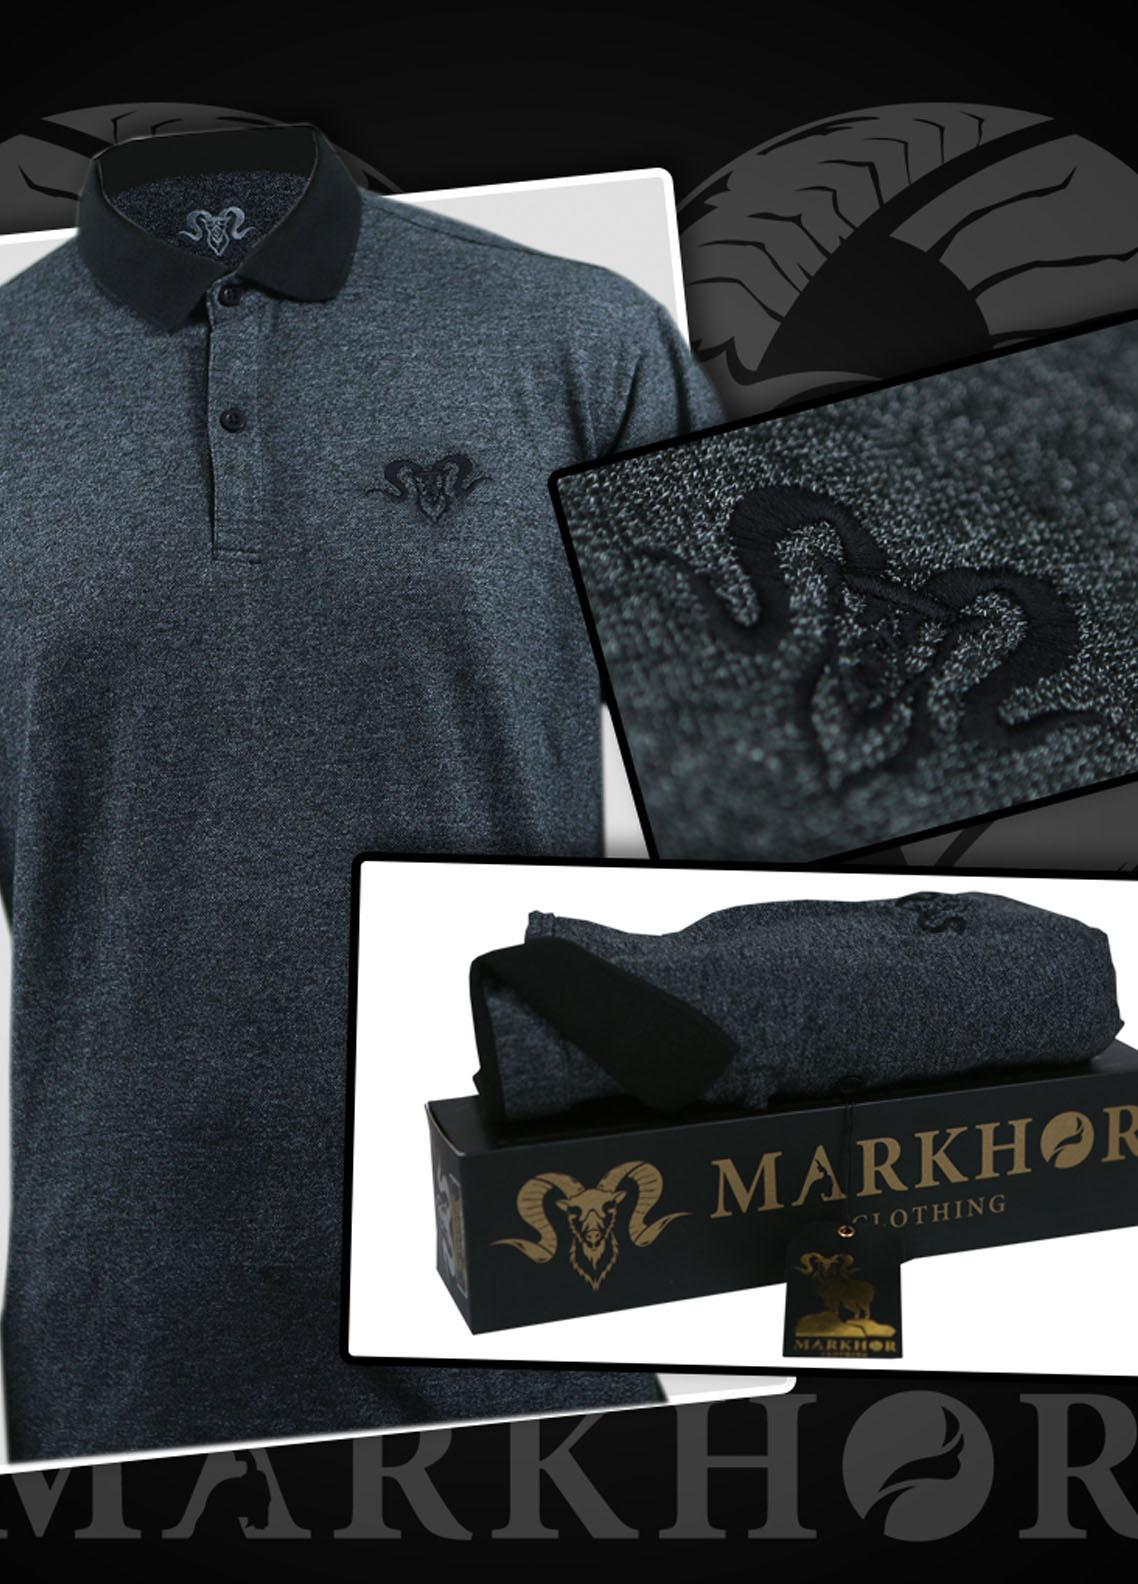 Markhor Clothing Cotton Casual Men Shirts - Grey  Royal Black Embroidered Charcoal Color Summer Polo Shirt